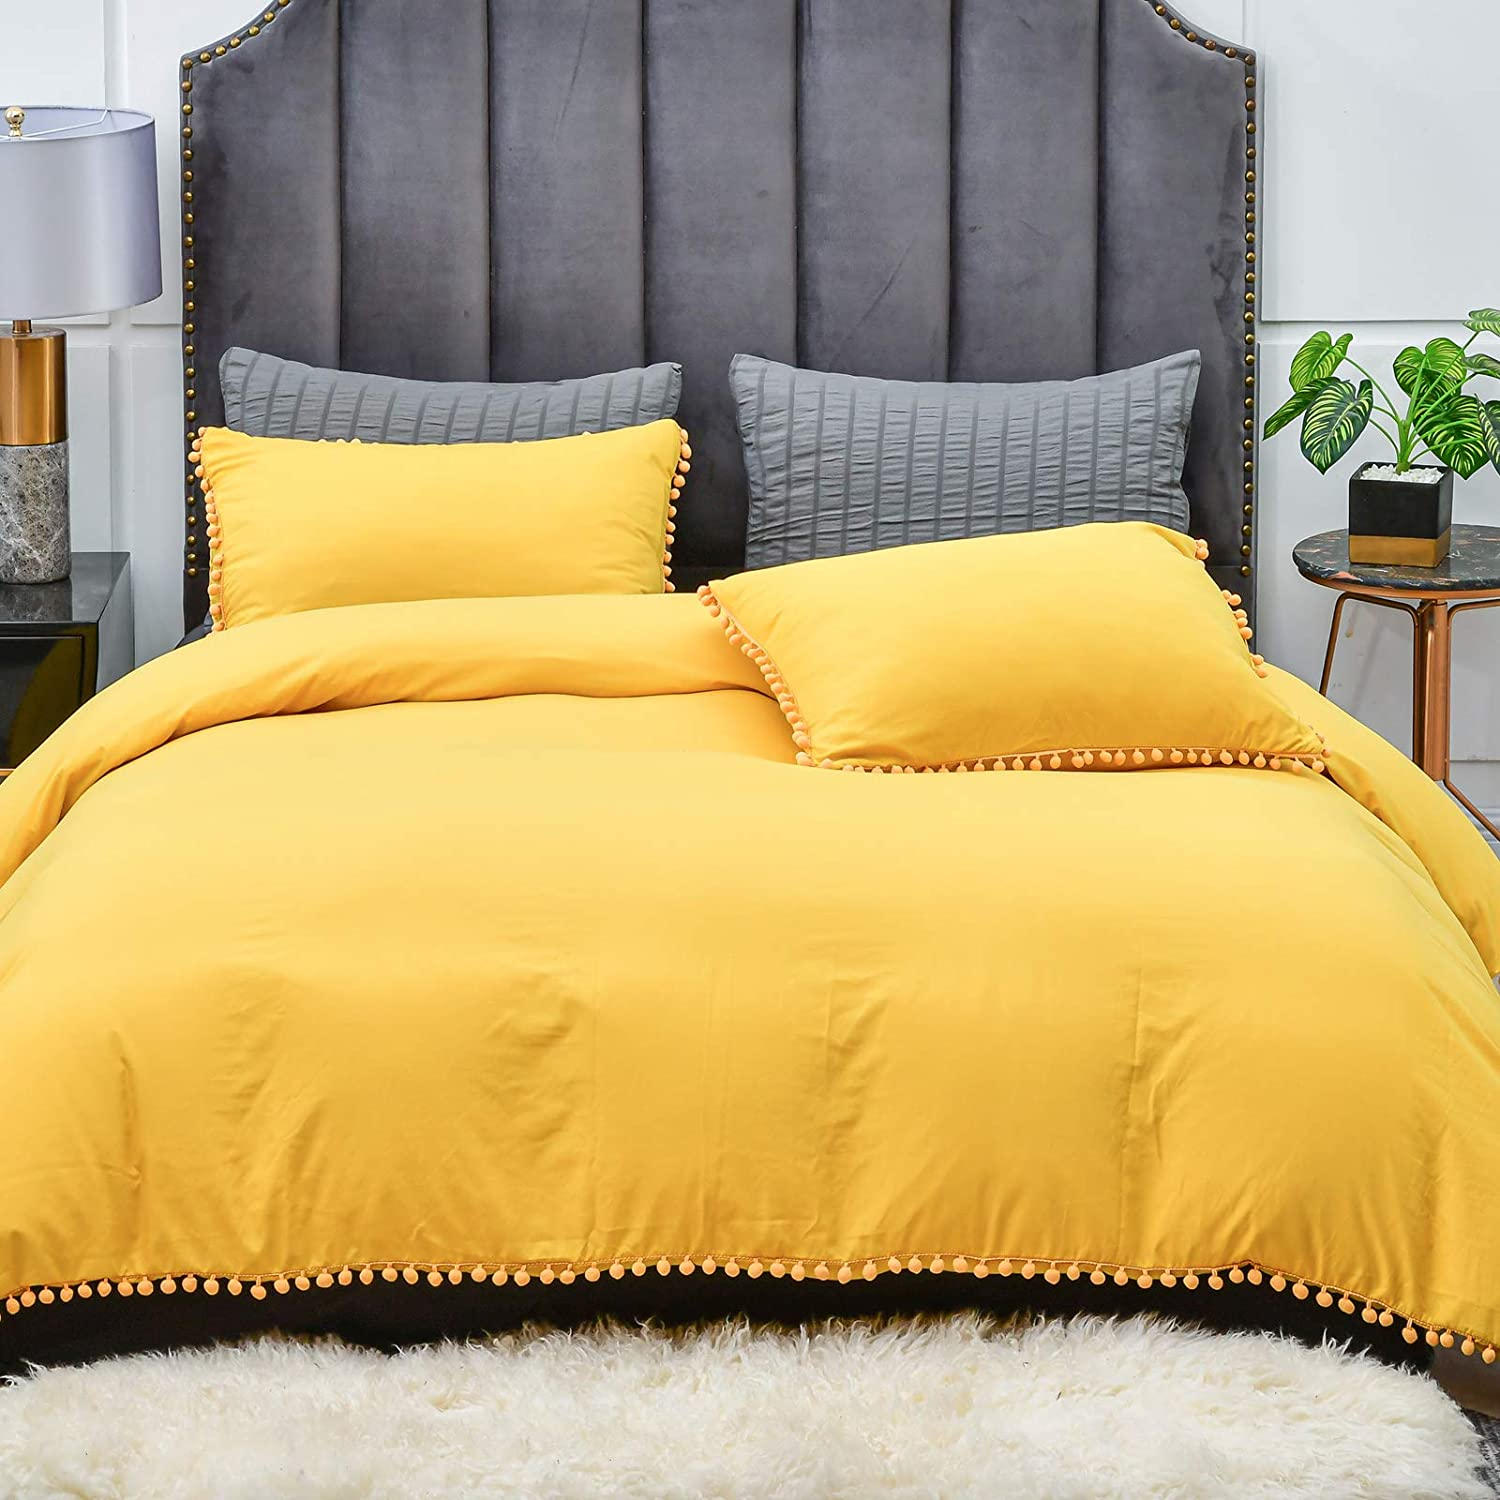 Yellow Duvet Cover Set, Pom Pom Fringe Design, Soft and Breathable Washed Microfiber Duvet Cover Set, 3 Pieces Bedding Duvet Cover with Zipper Closure & Corner Ties, 104x90, Yellow King